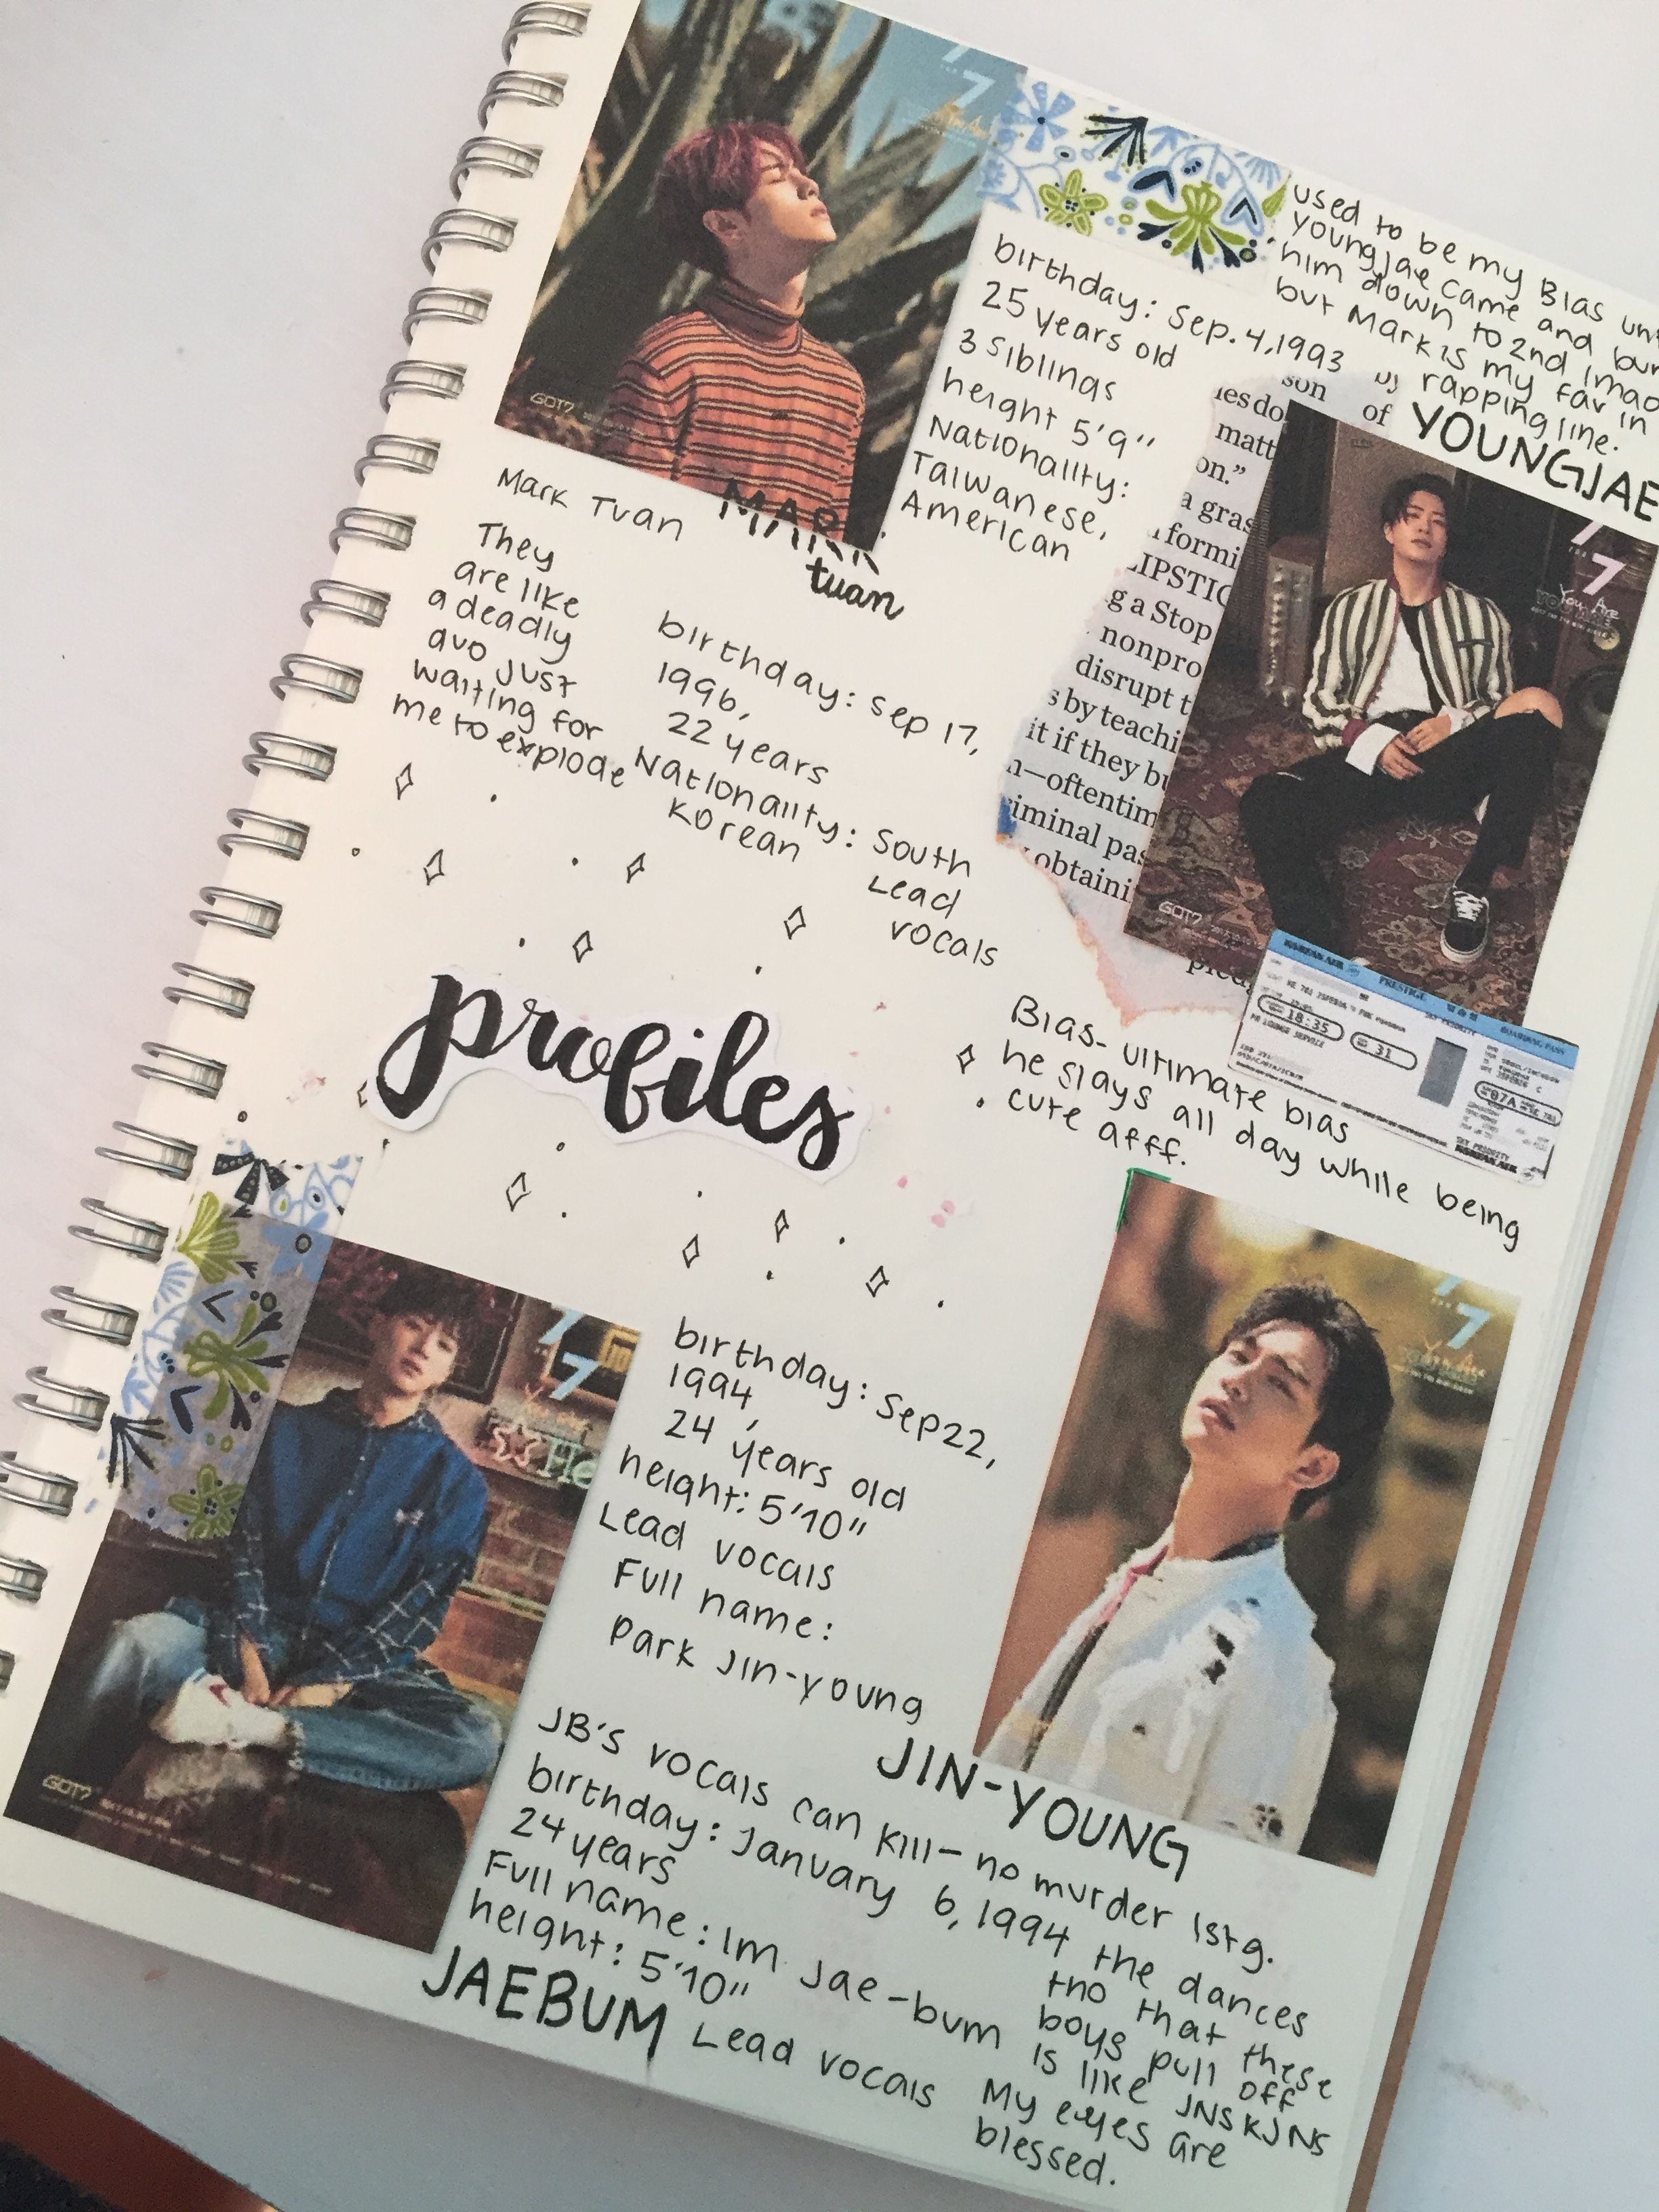 Got7 Profiles Got7 Kpopjournal Kpopbulletjournal Kpopbujo Ideias Para Cadernos Jornalismo Coisas De Papelaria They are multinational with members from south korea, hong kong, thailand and the united states. got7 profiles got7 kpopjournal